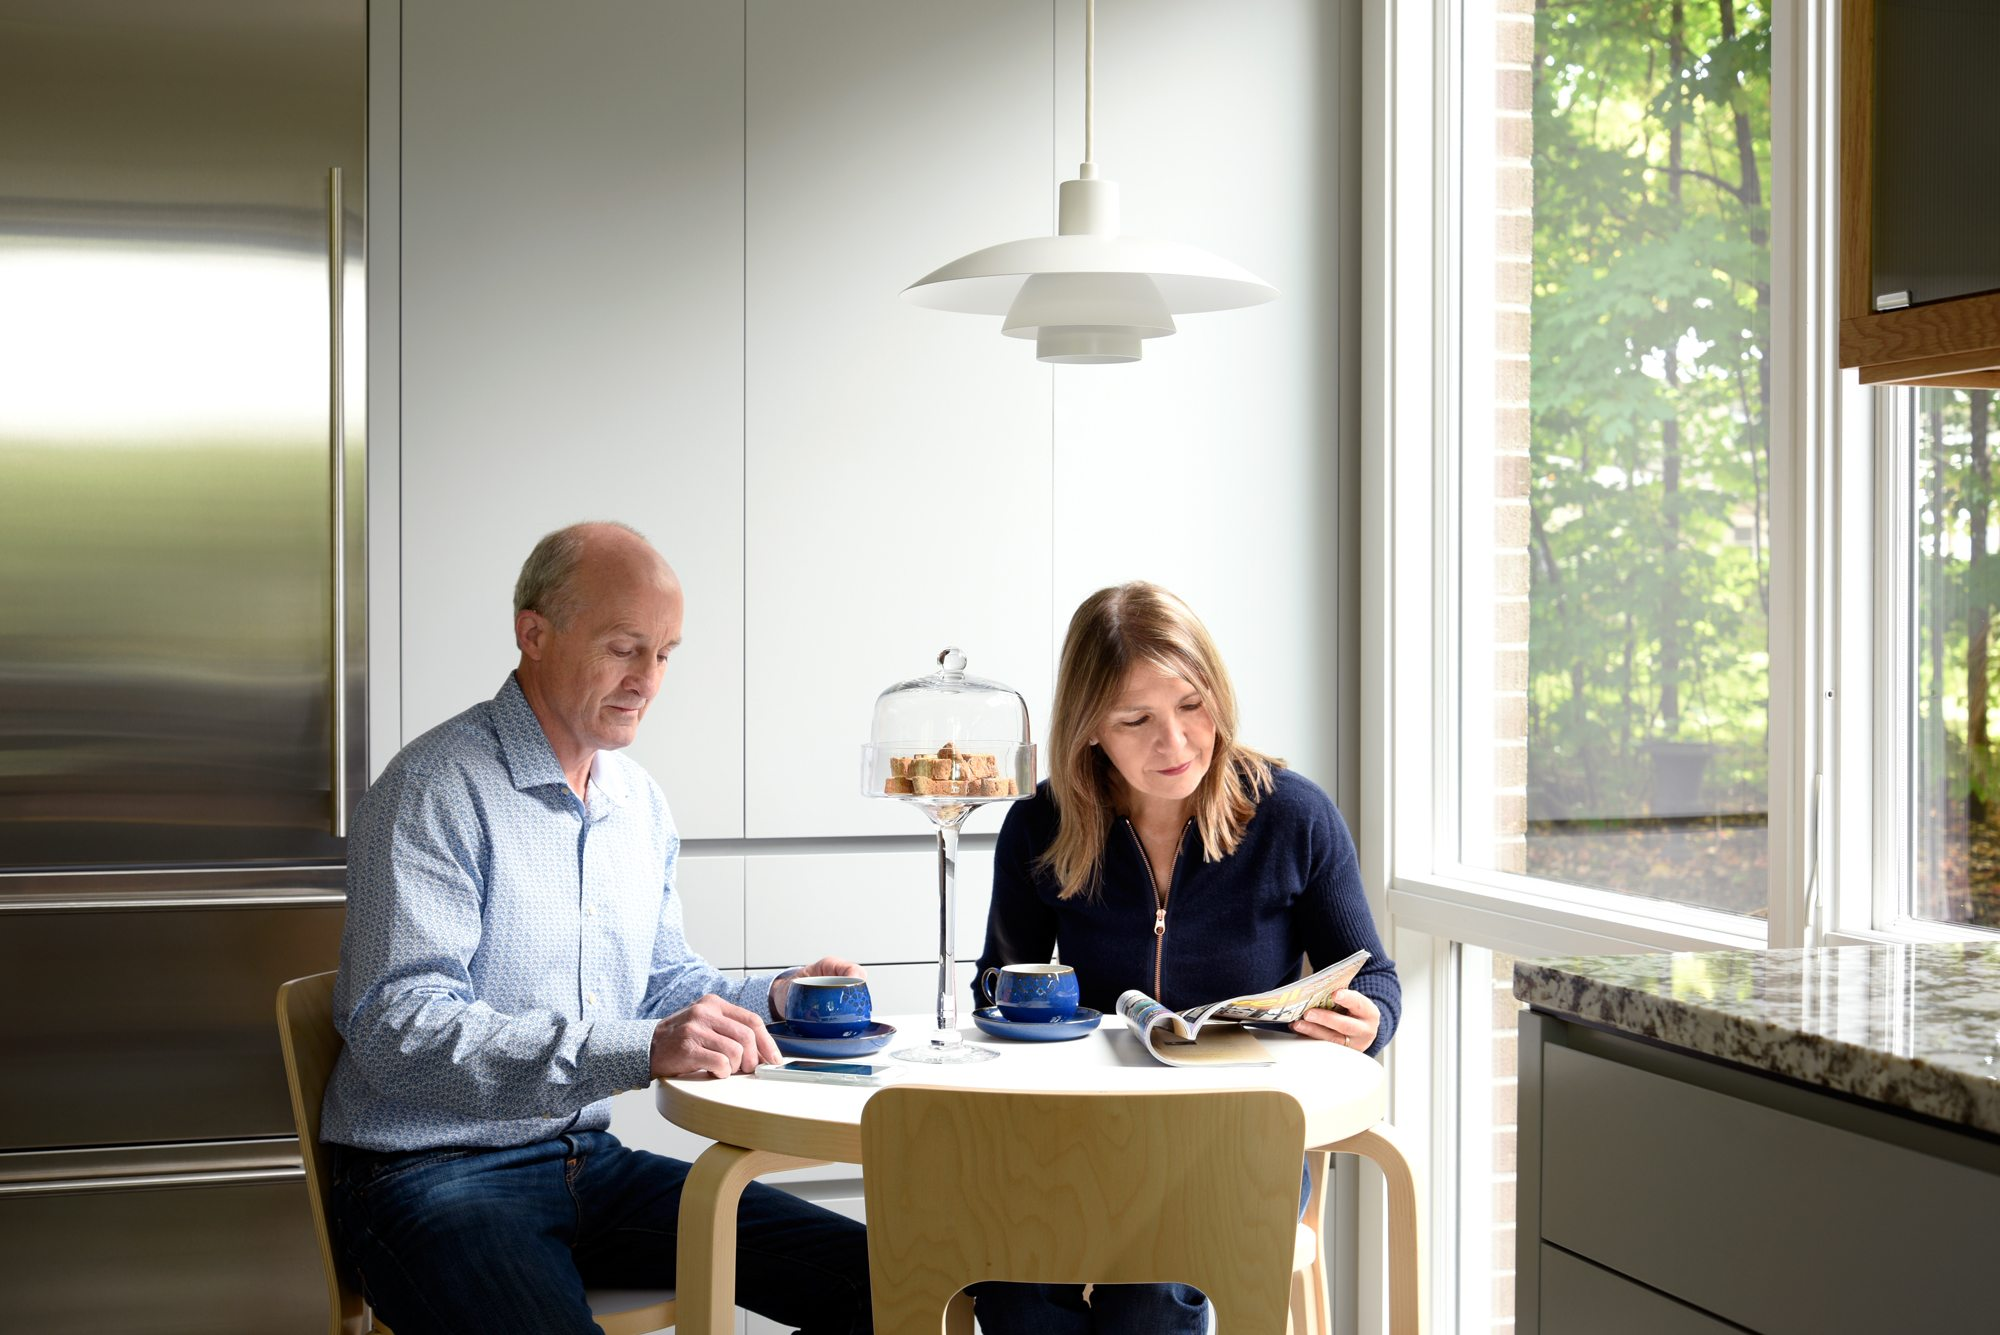 Despite the forested setting, sun floods many rooms, including the kitchen eating nook where the Willcoxes enjoy a rare moment of relaxation. Photos: Gordon King